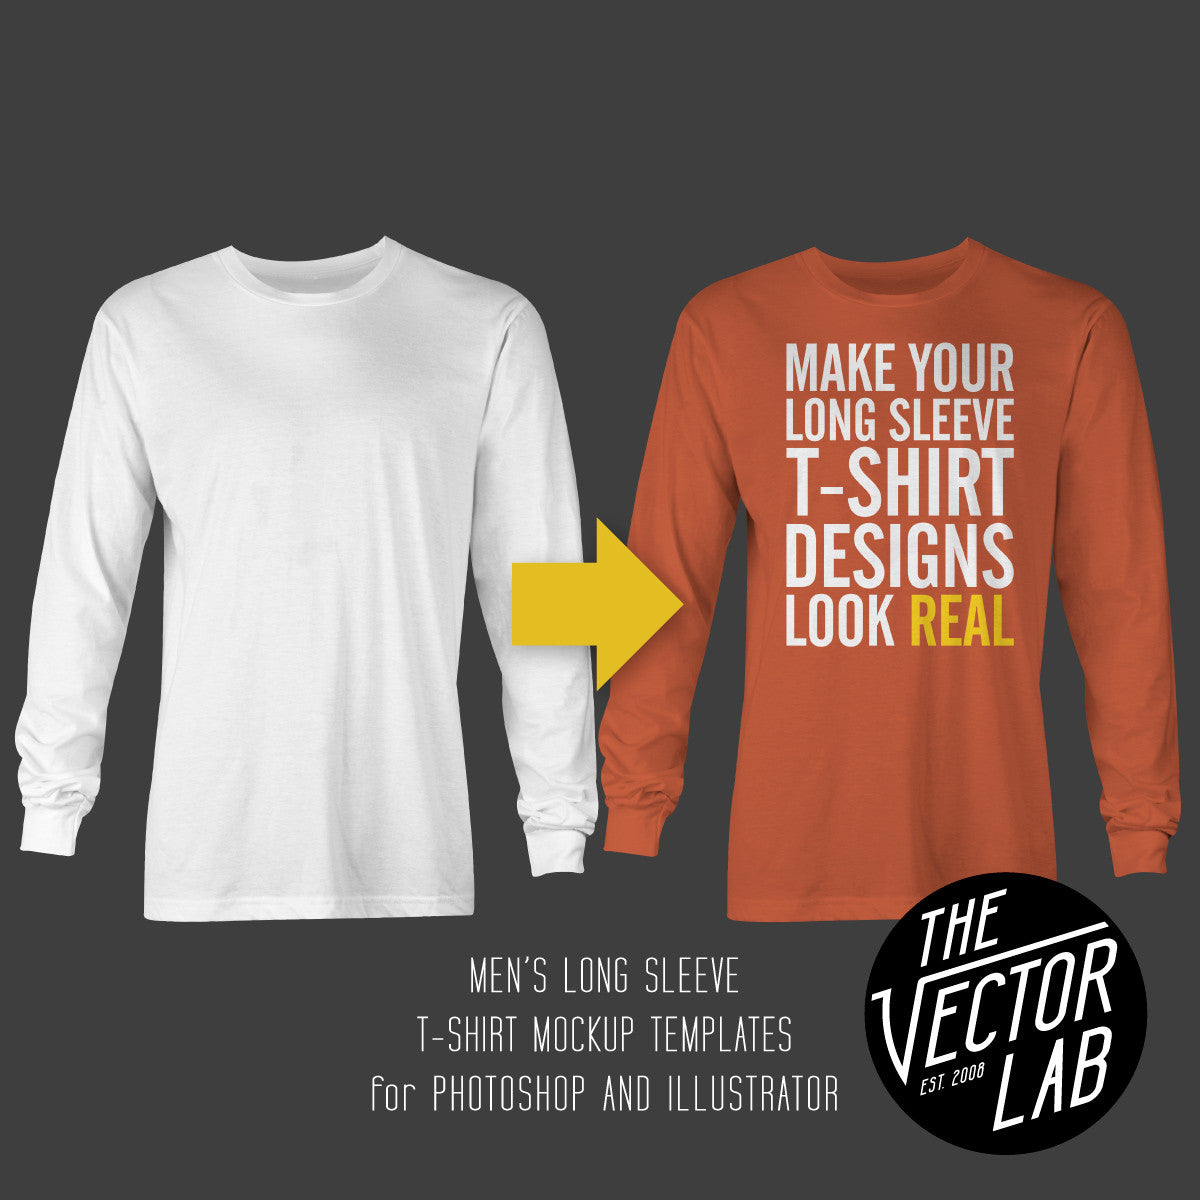 Men's Long Sleeve T-Shirt Mockup Templates - TheVectorLab